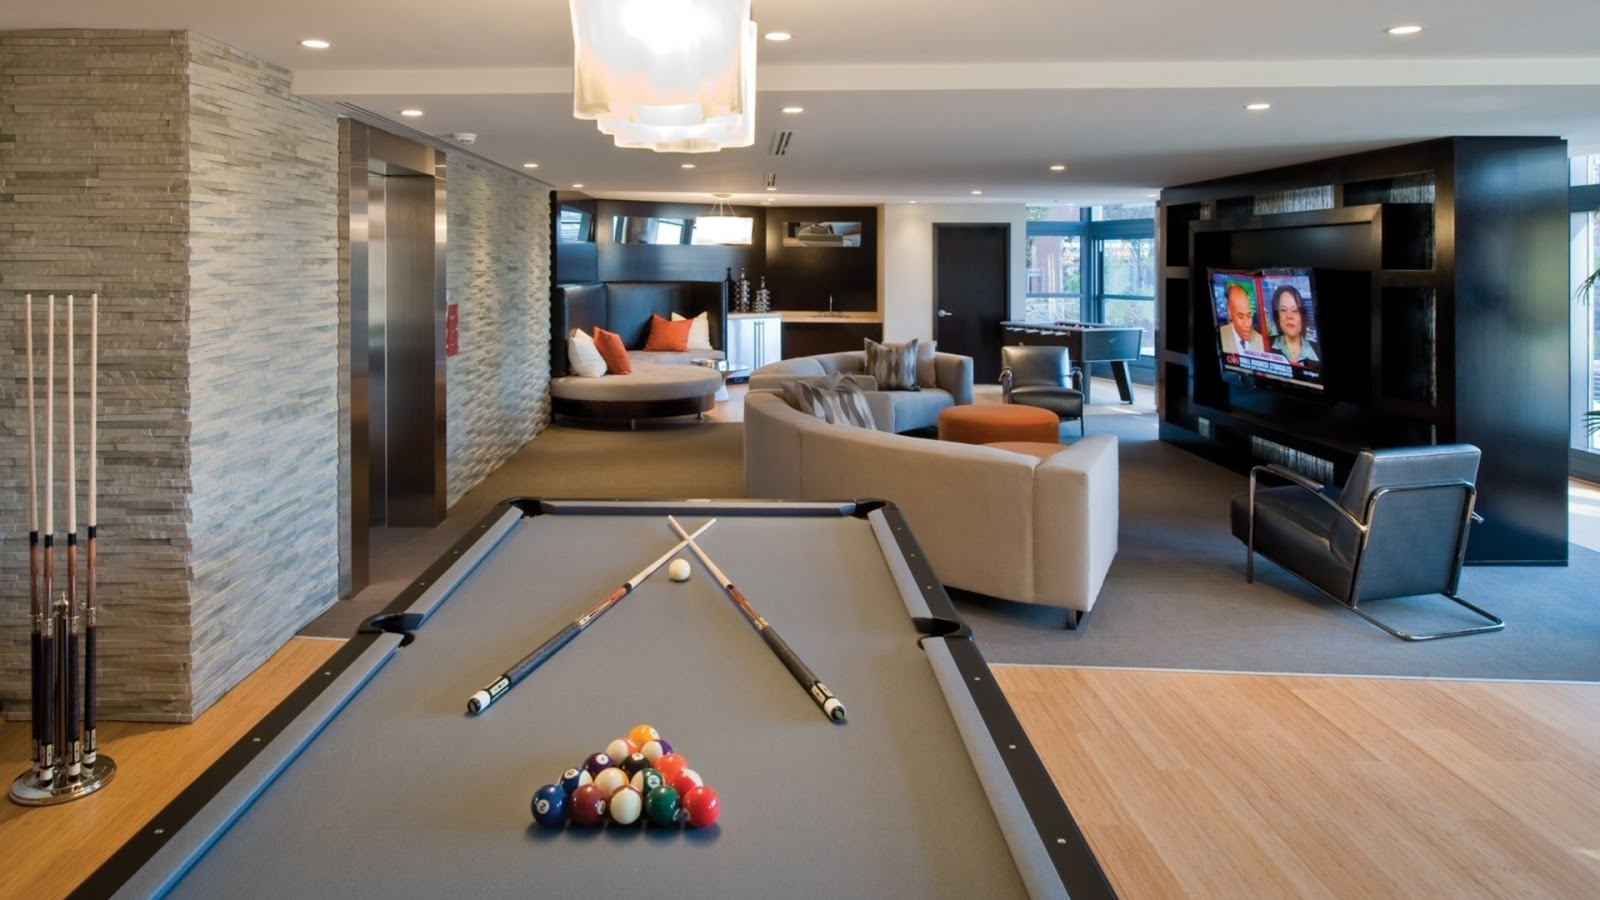 Design Interior Billiard Table